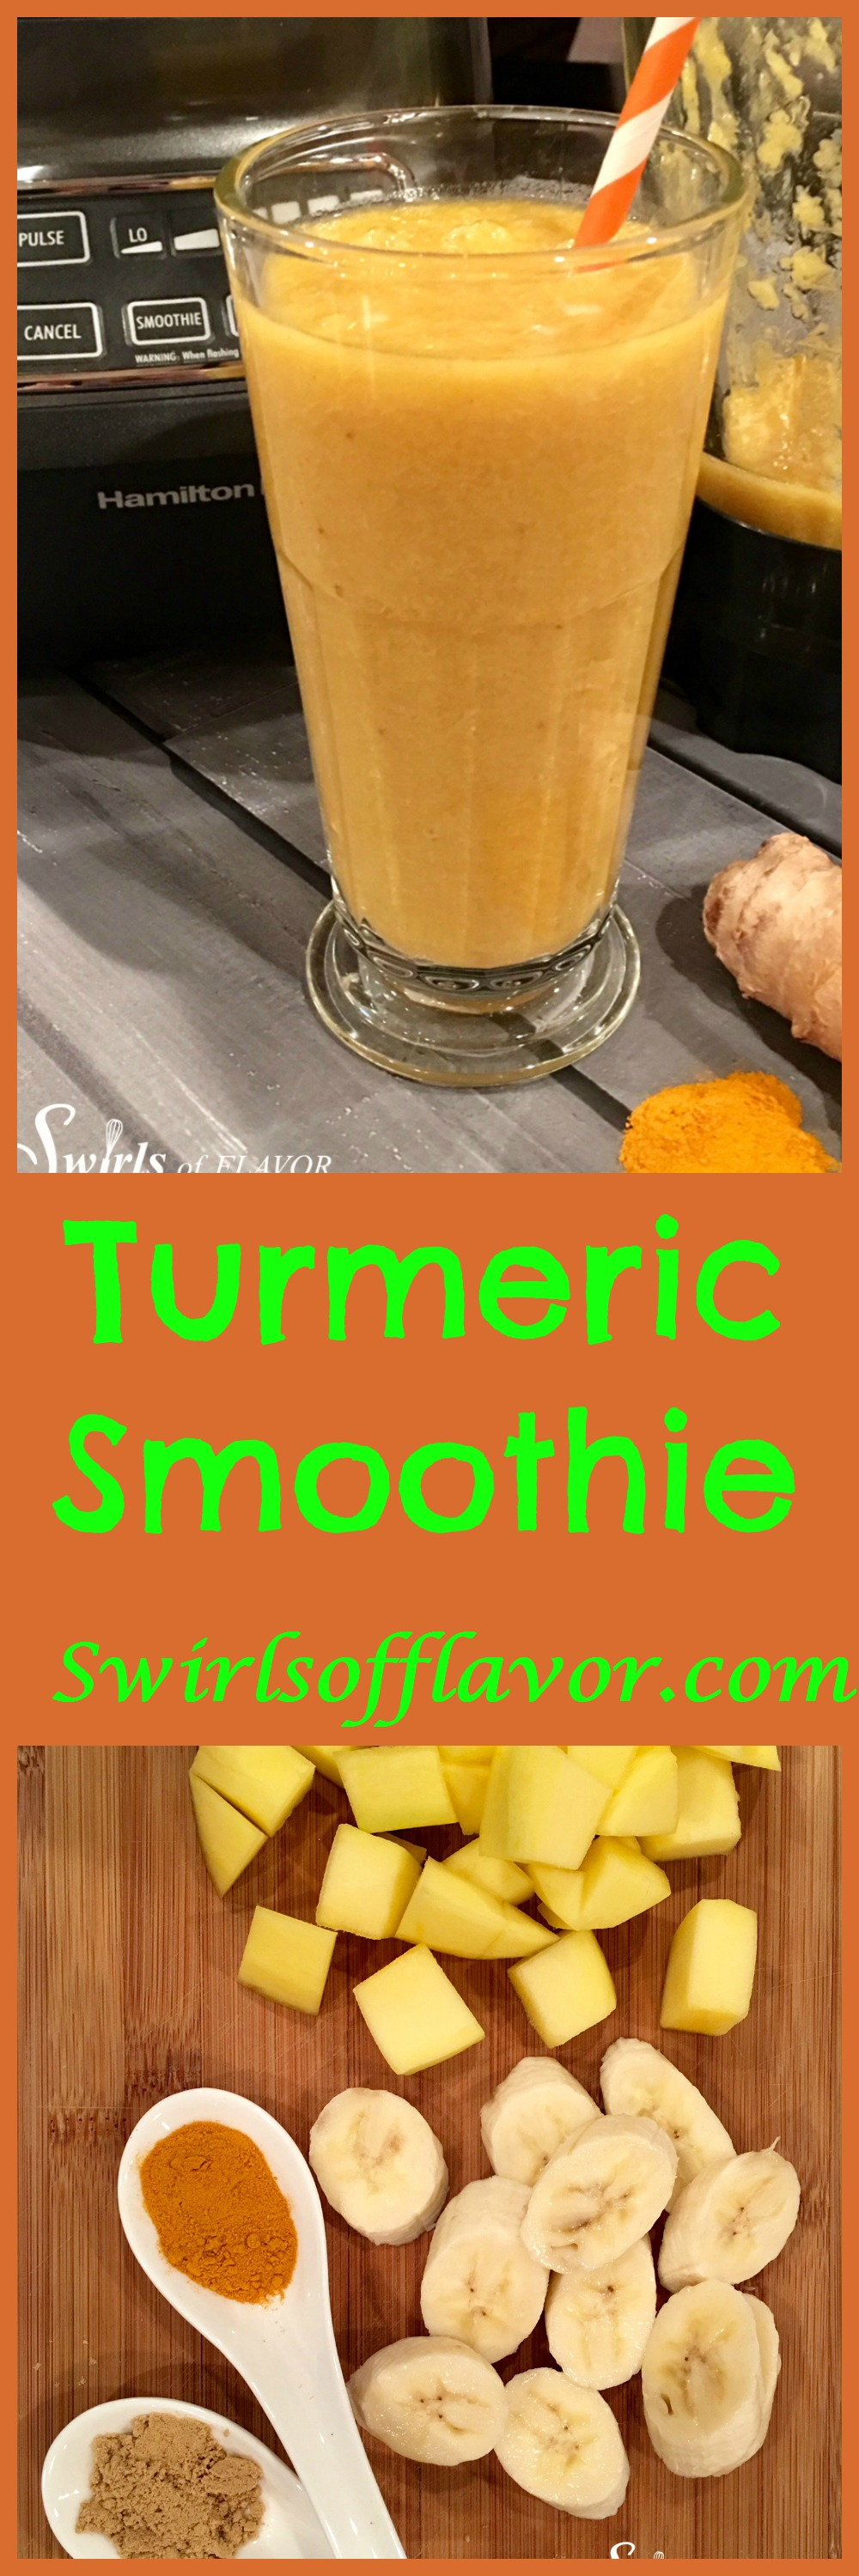 Turmeric Smoothie, golden in color, bursting with fresh fruit flavors and brimming with amazing health benefits, is a great way to start your day!. turmeric | ginger | mango | banana | smoothie | healthy | breakfast | drink | #swirlsofflavor